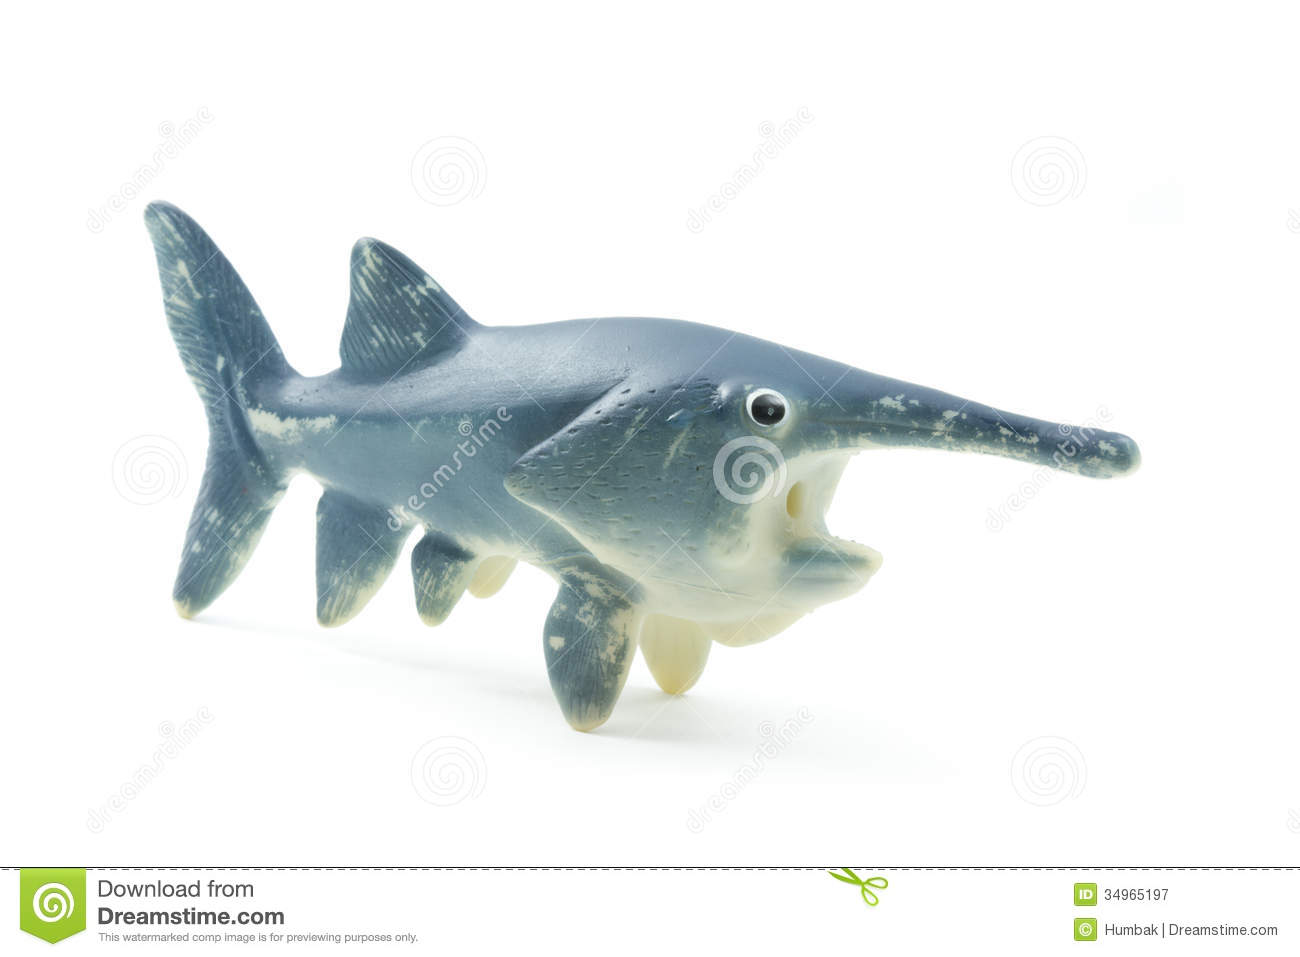 Rubber toy fish royalty free stock photography image for Rubber fish toy